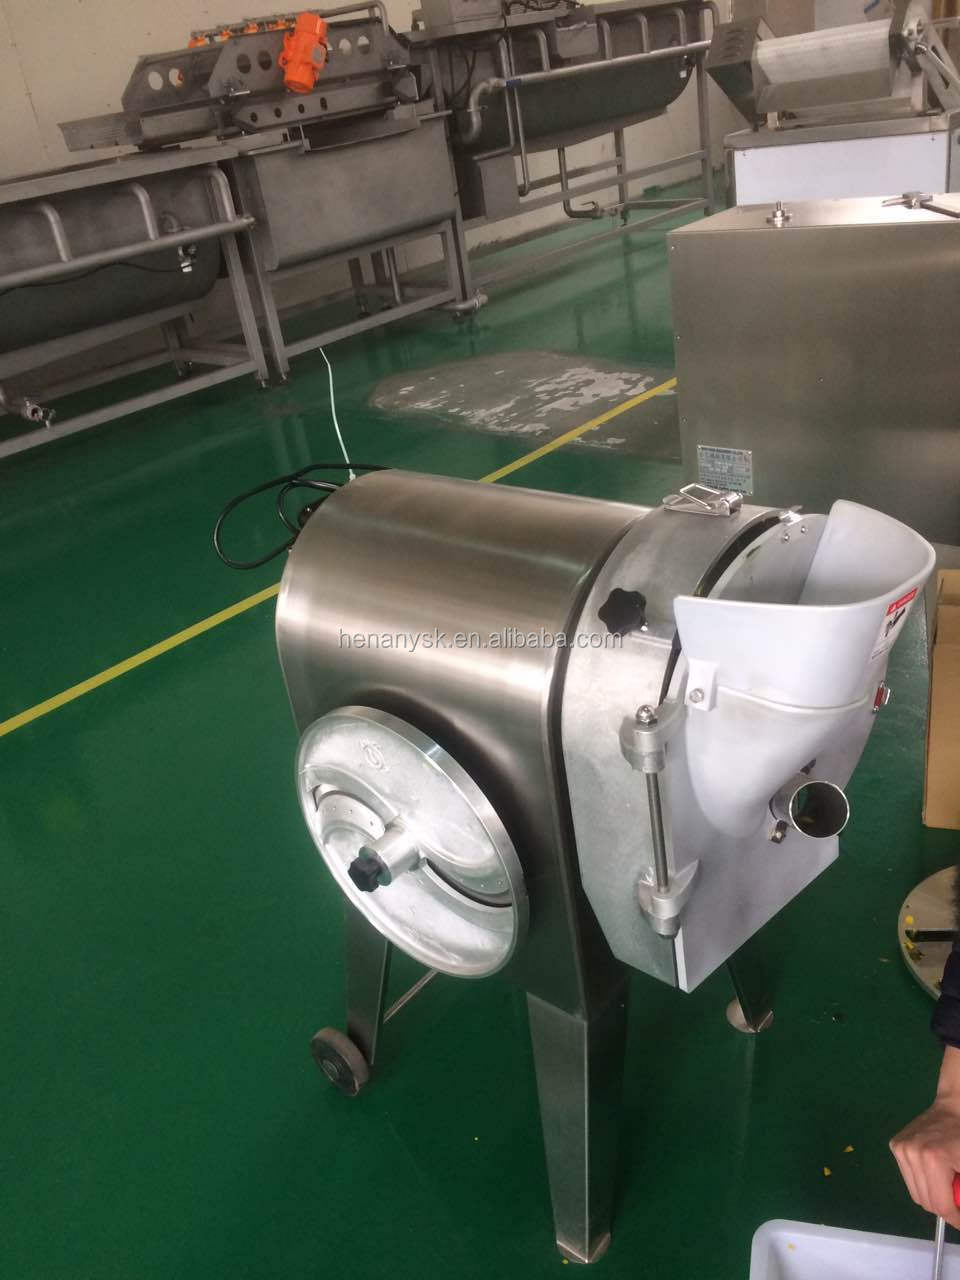 DQC-611 Stainless Steel Fully Automatic Vegetable Cutter Slicers Carrot Potato Radish Dicing Machine Dicer Cube Cutter